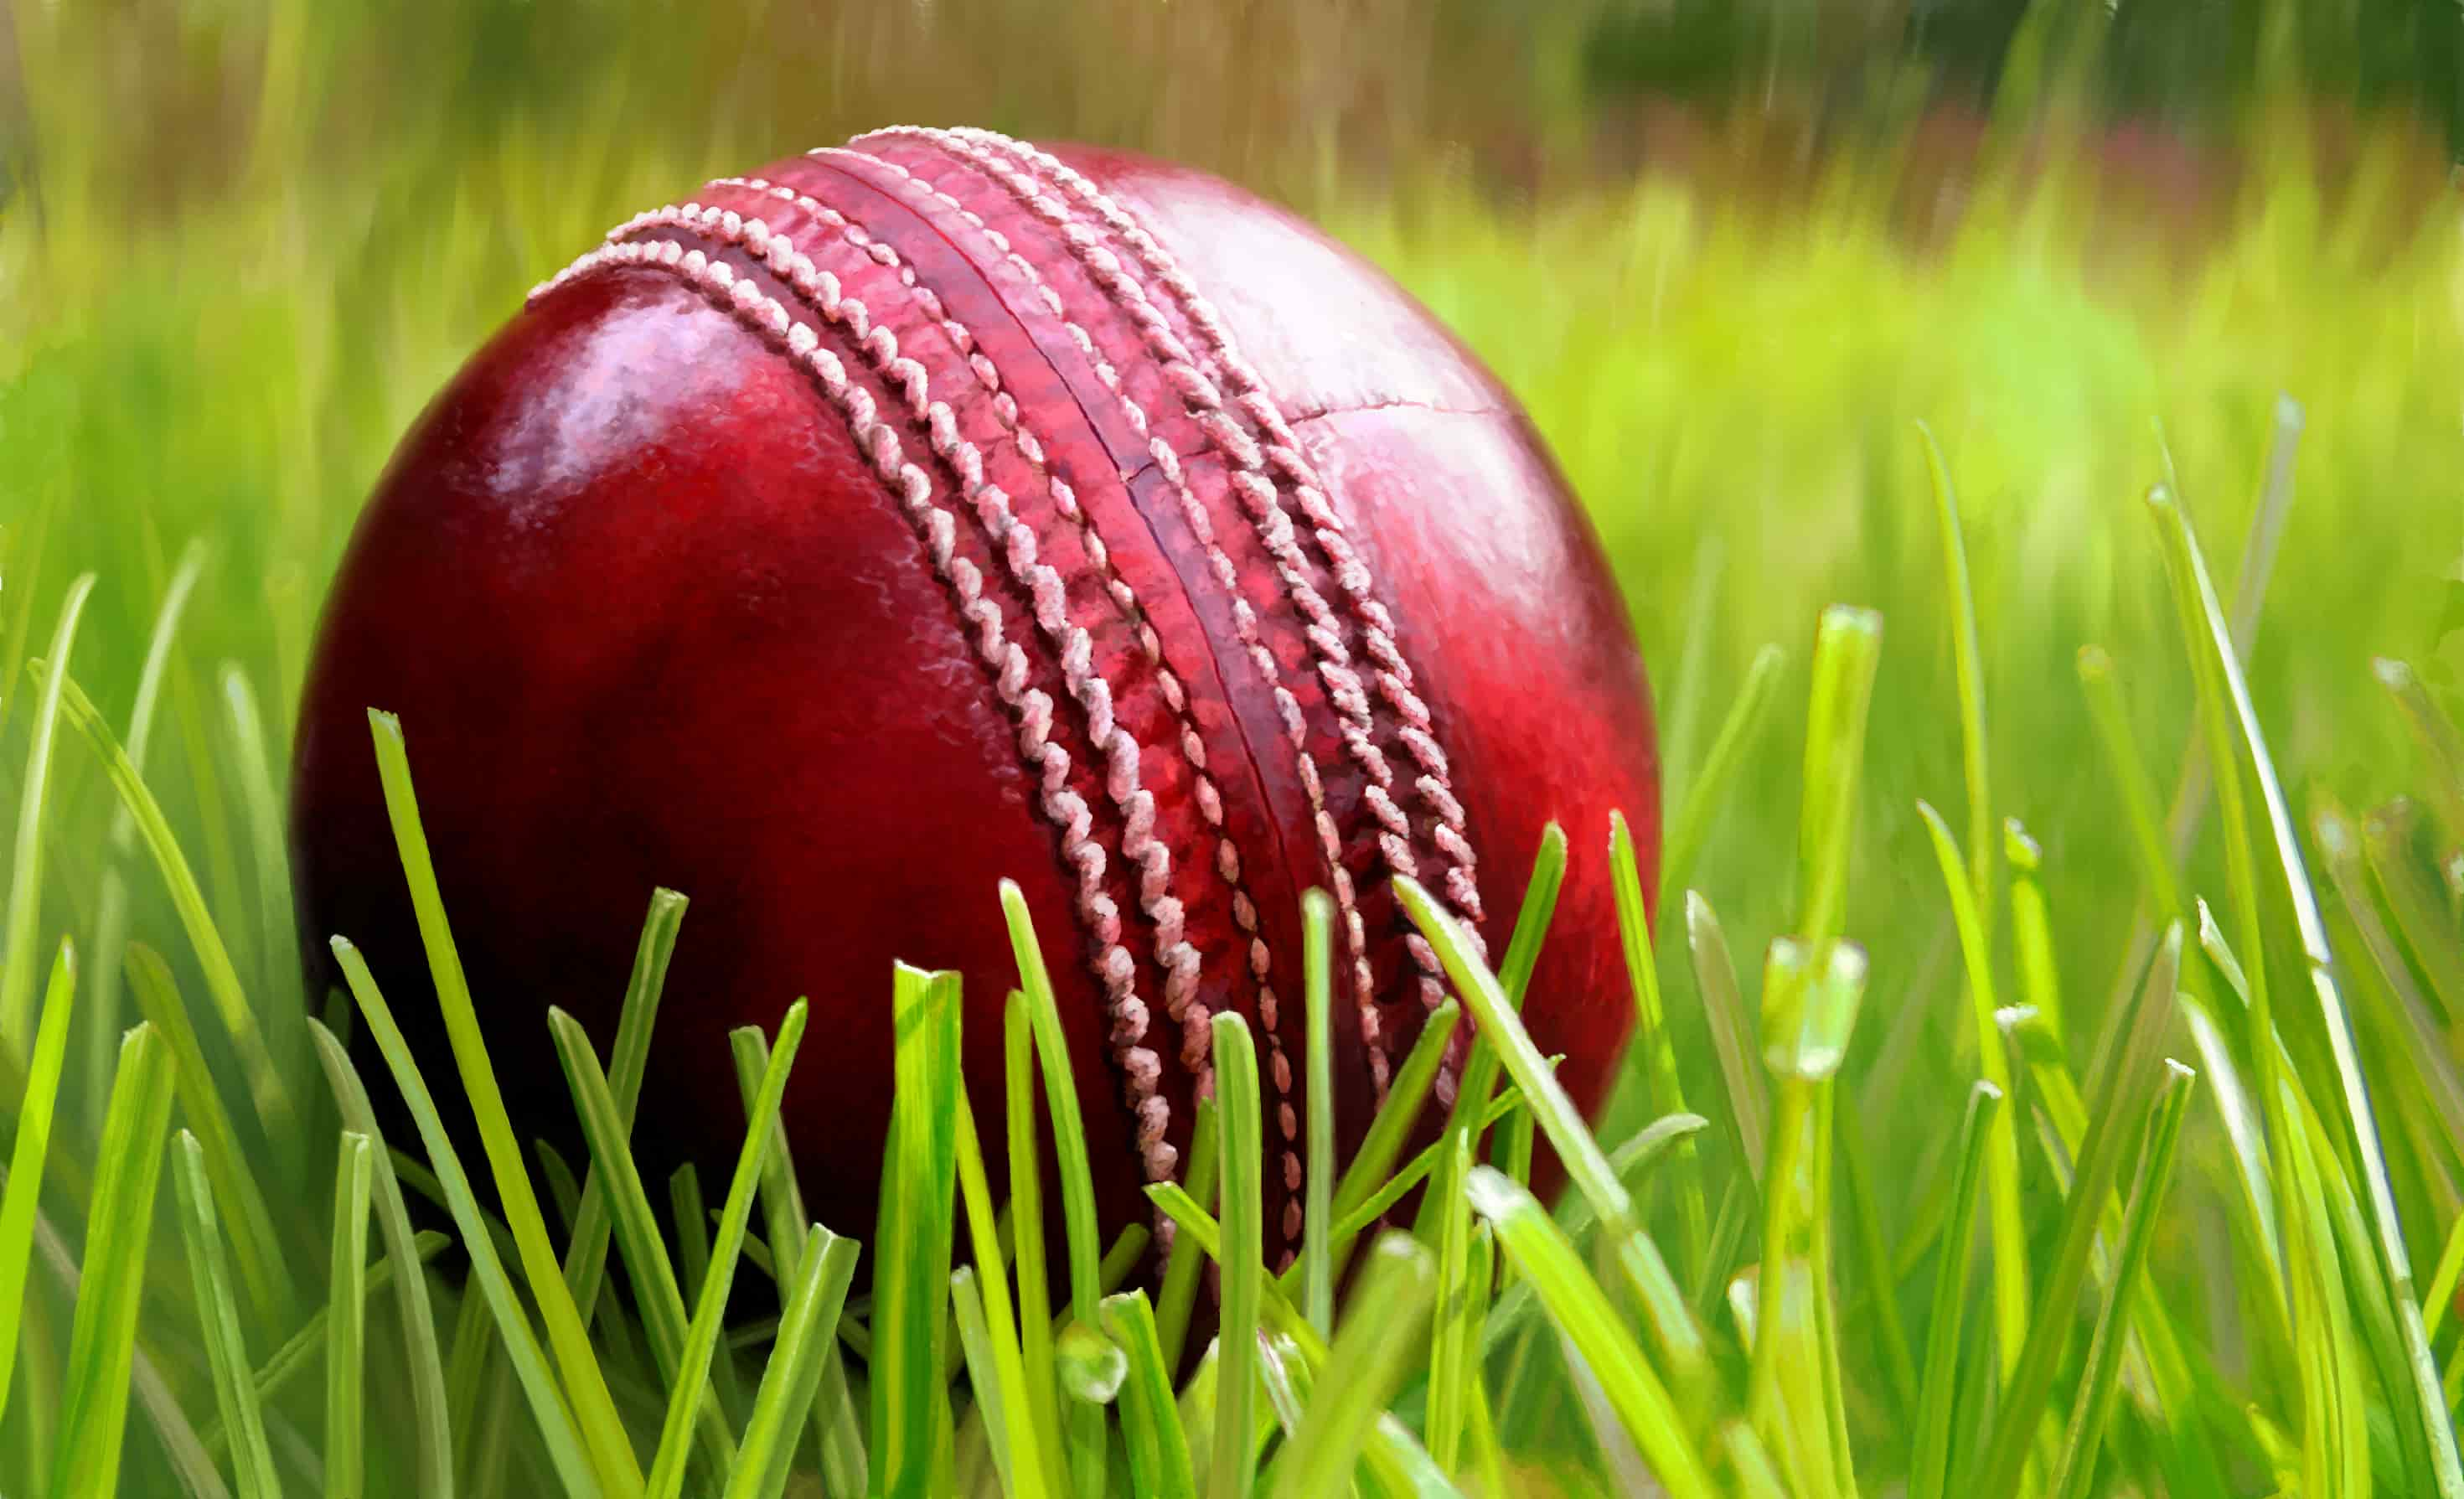 Halal Food and Mosque Guide to the 2015 Ashes